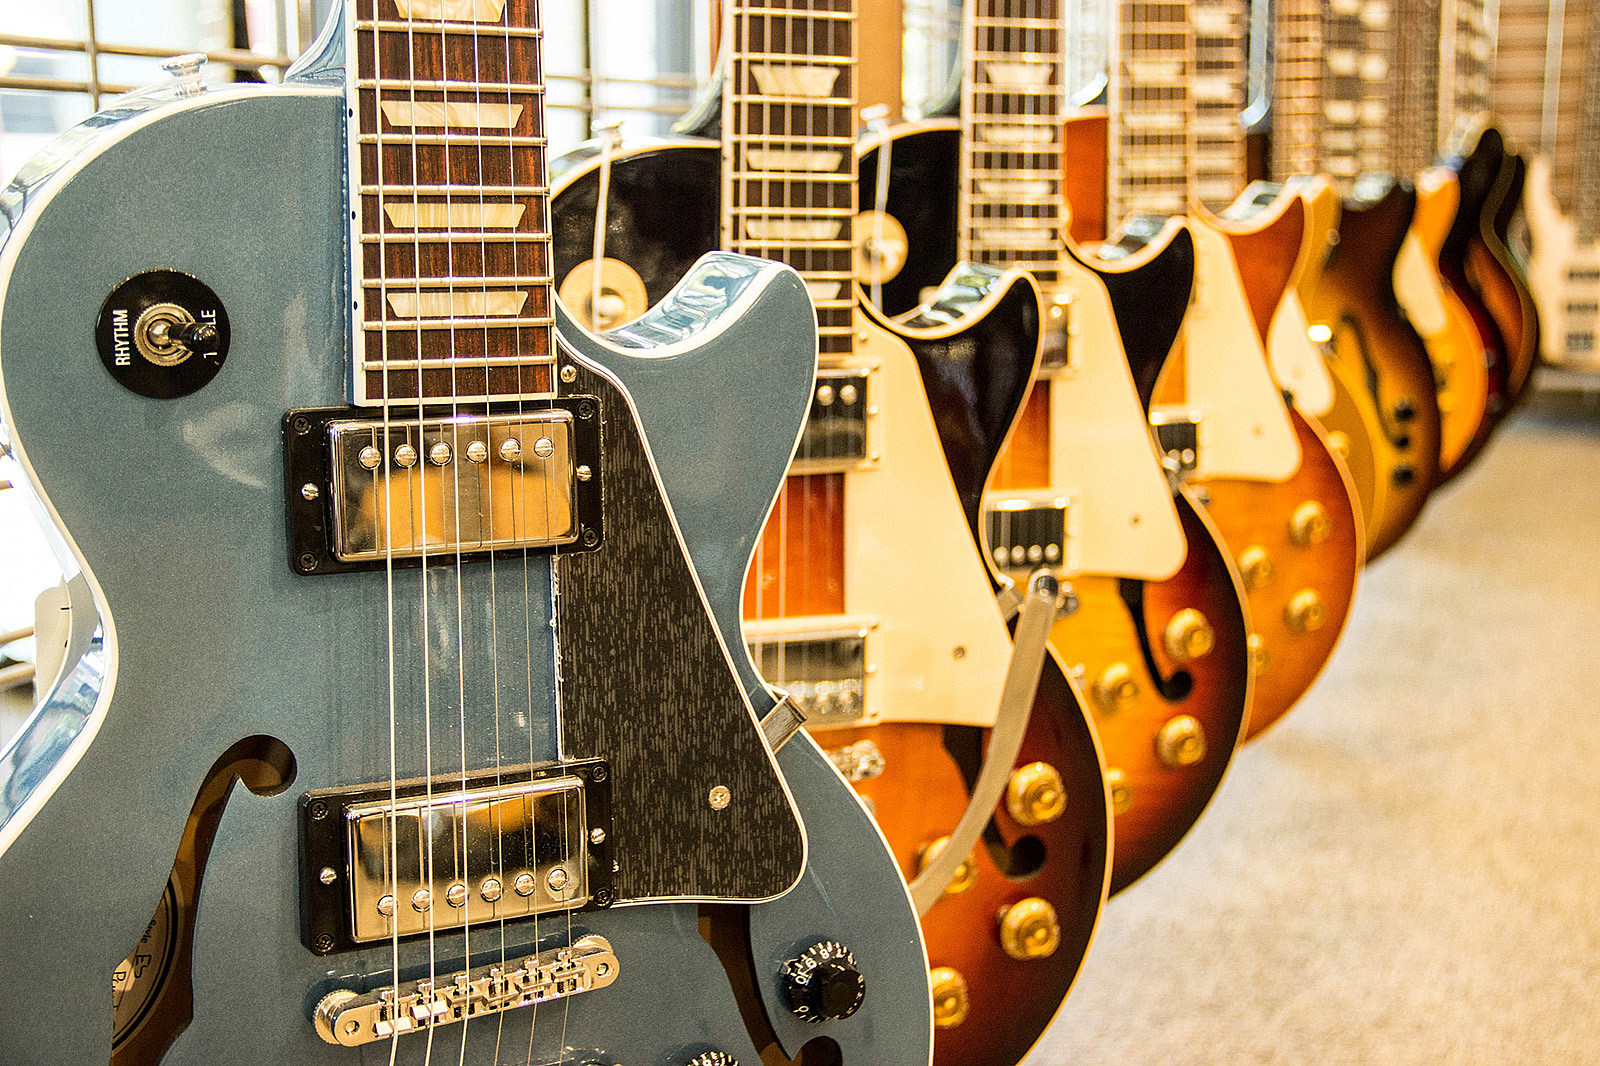 Gibson files for bankruptcy, legendary guitar maker to operate while reorganizing